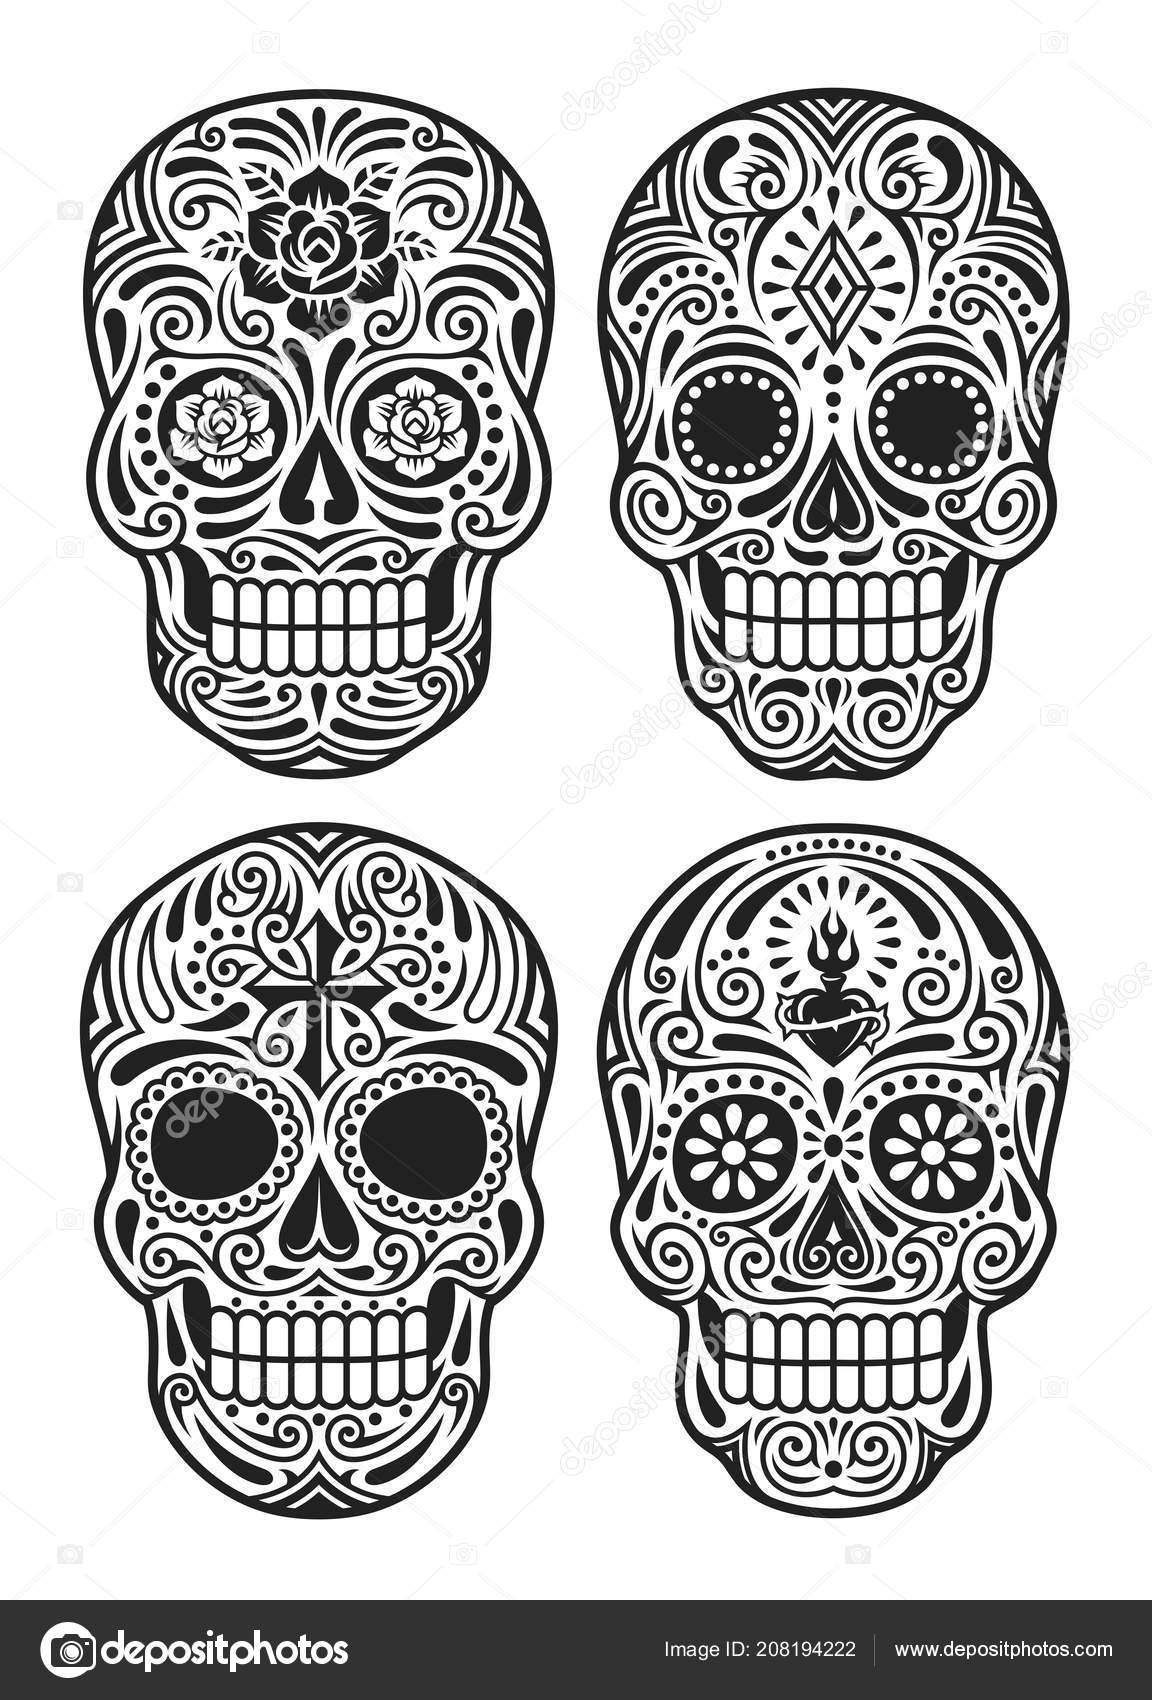 Day of the dead clip art black and white.